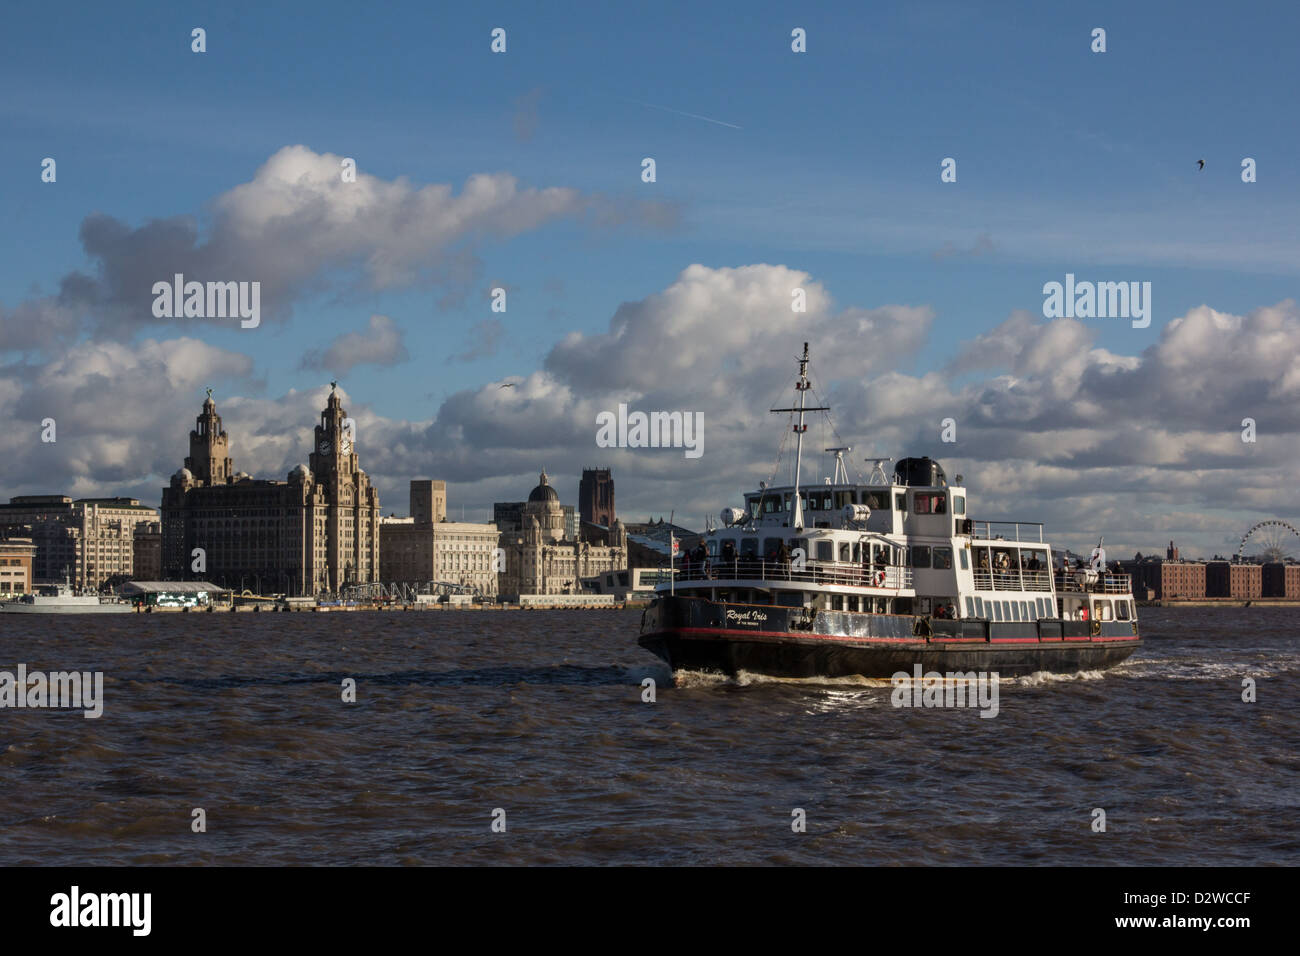 A Mersey Ferry the 'MV Royal Iris of the Mersey' on the River Mersey with the Liverpool waterfront in the - Stock Image